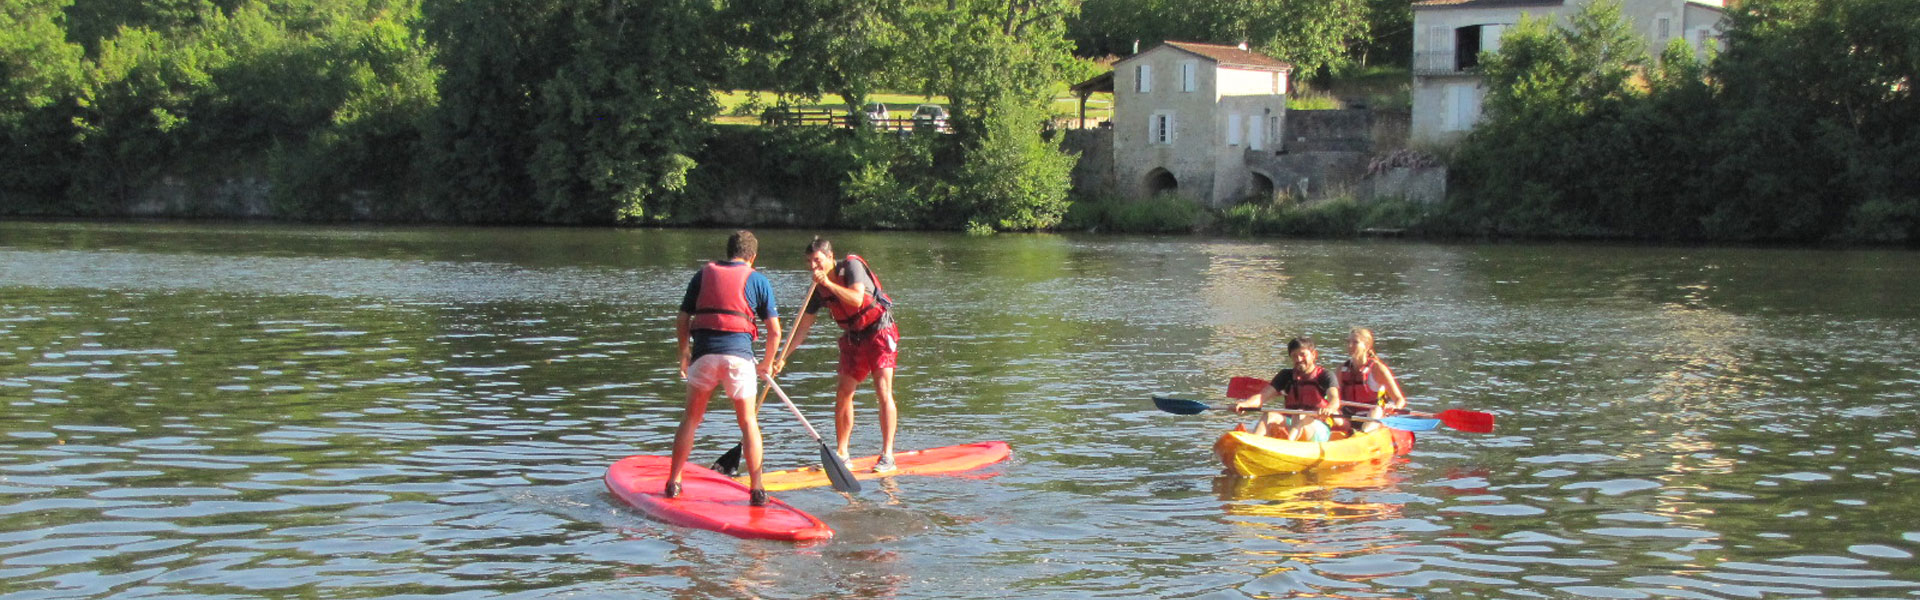 Location de canoes, kayaks et stand up paddles à Castelmoron sur Lot